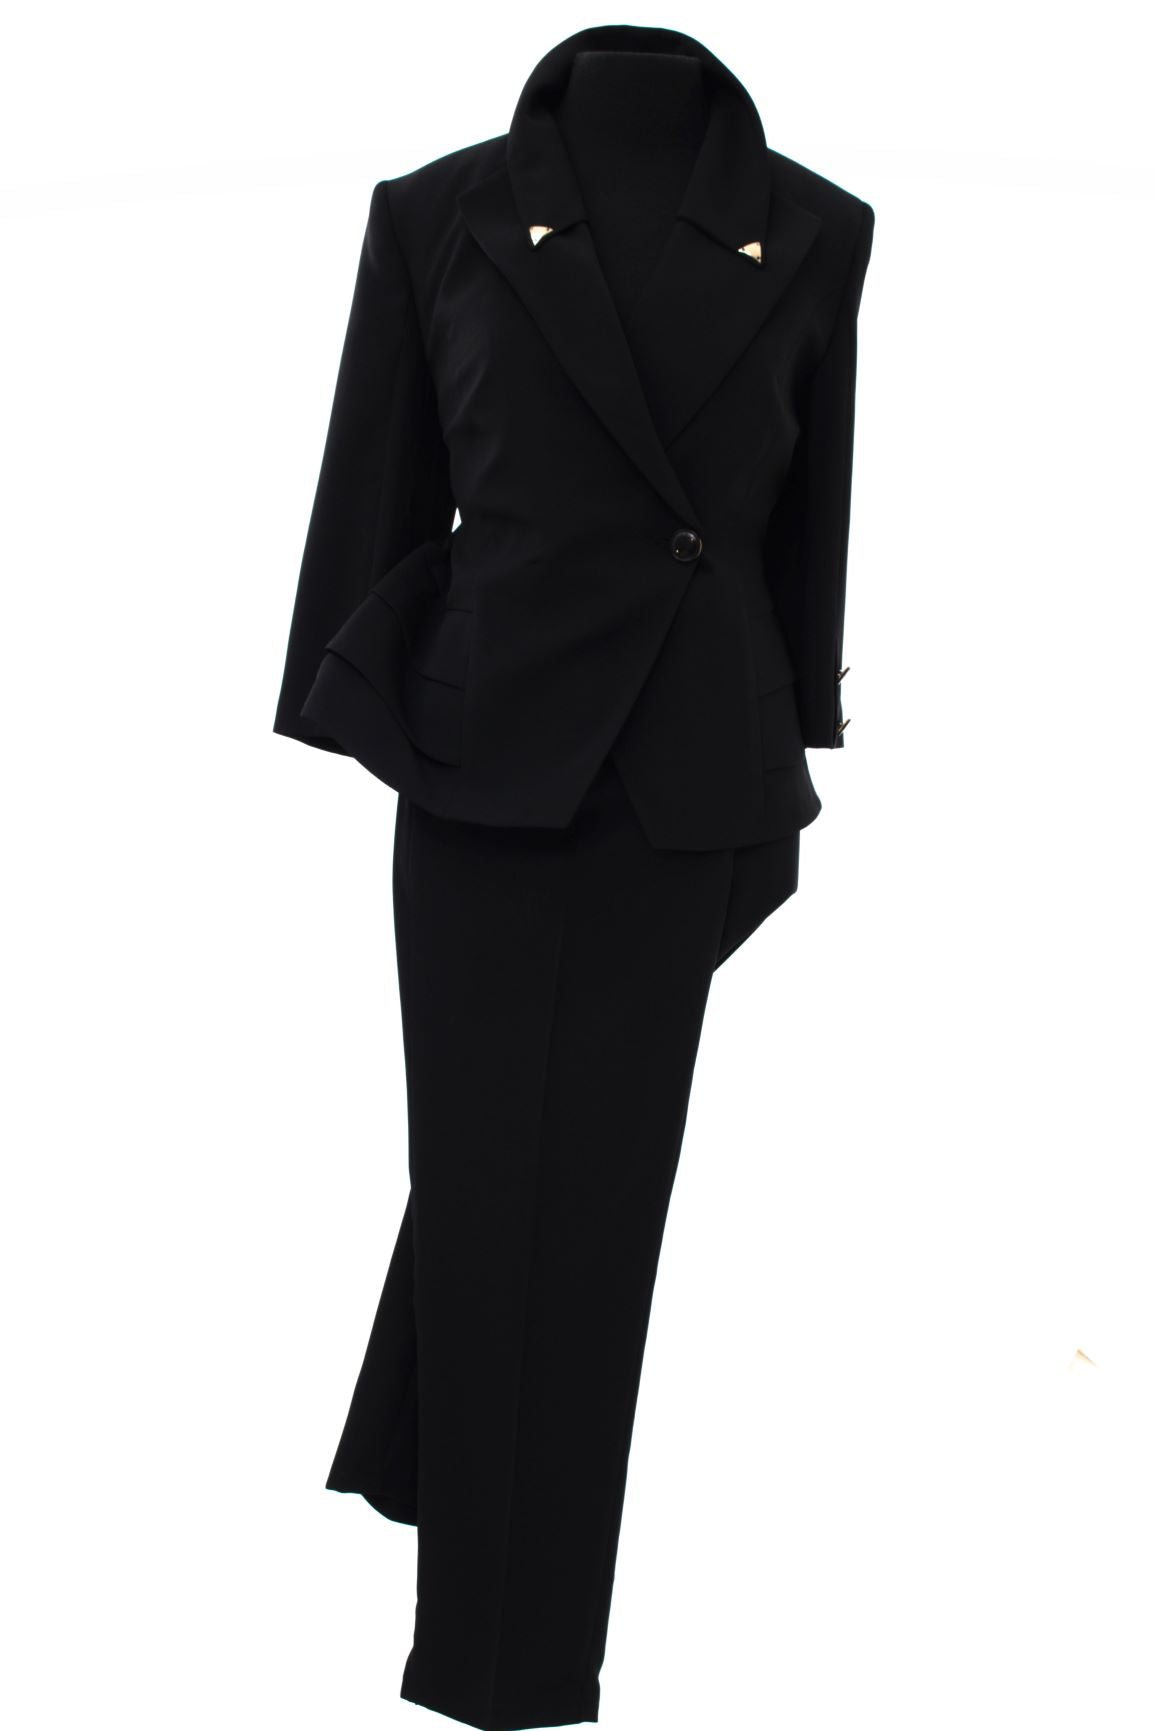 Women's Pant Styled Suit with Button Blazer - Black